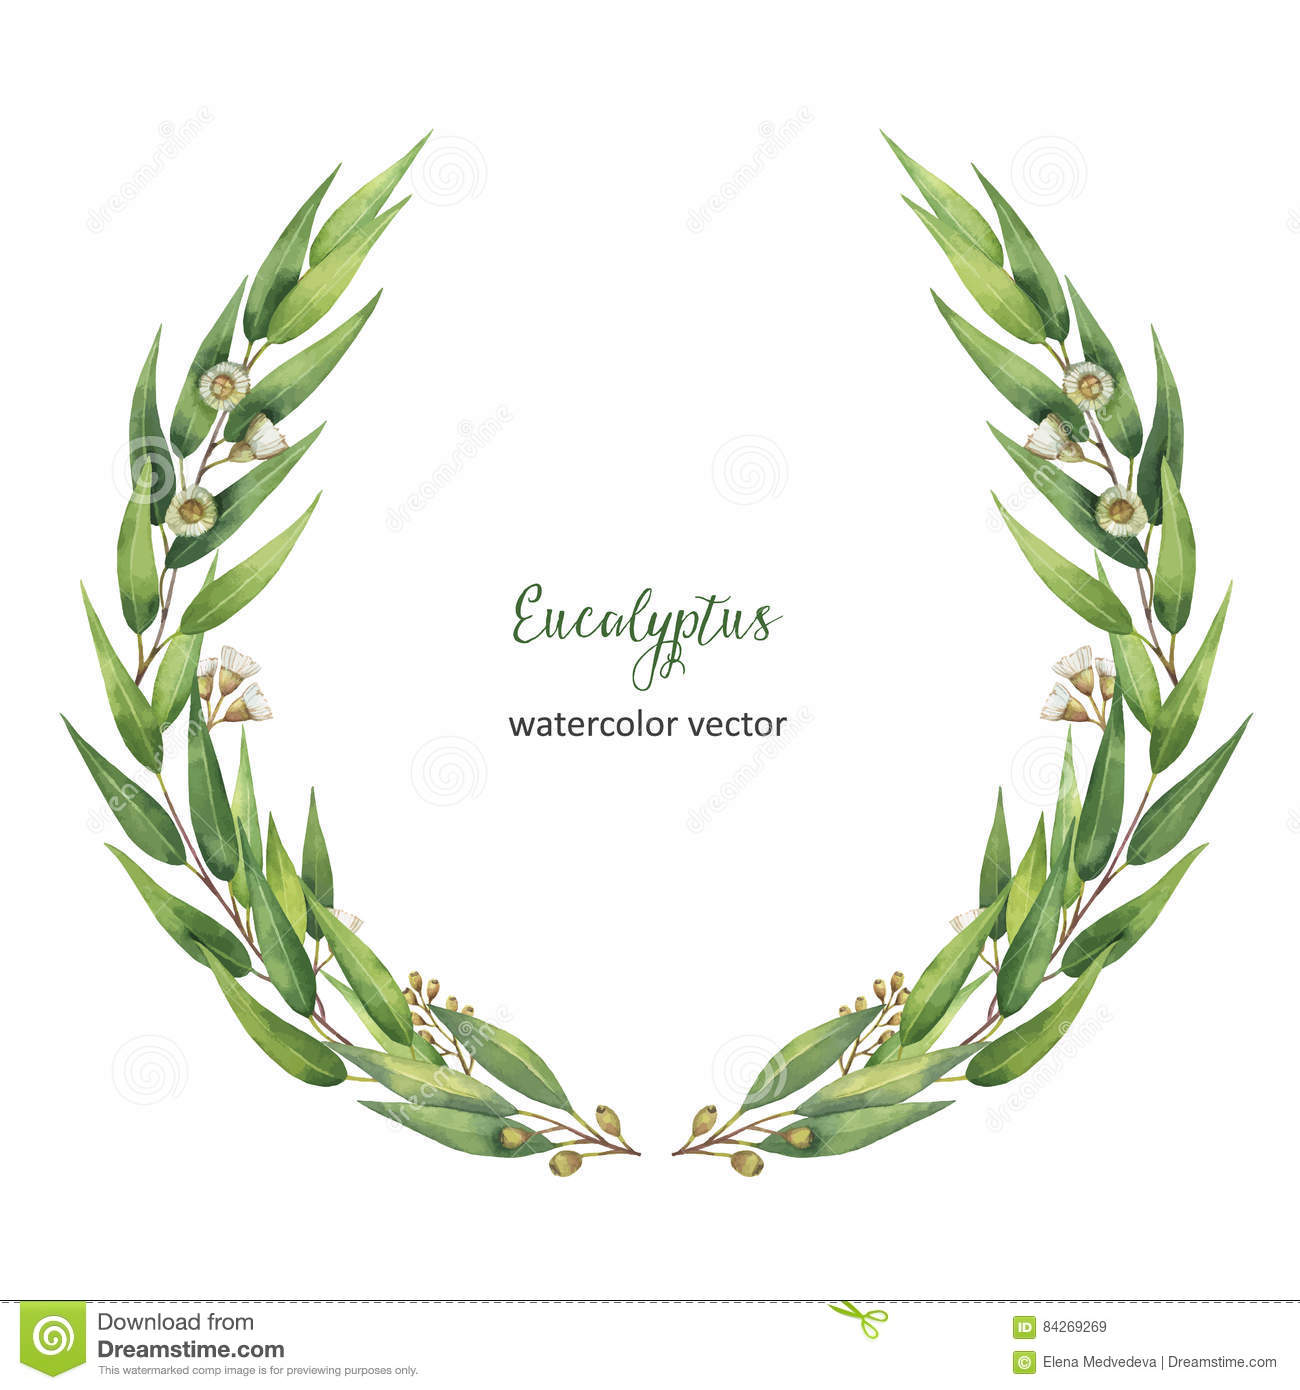 Stock Illustration Watercolor Vector Round Wreath Green Eucalyptus Leaves Branches Healing Herbs Cards Wedding Invitation Posters Save Image84269269 on Gold Circle Frame